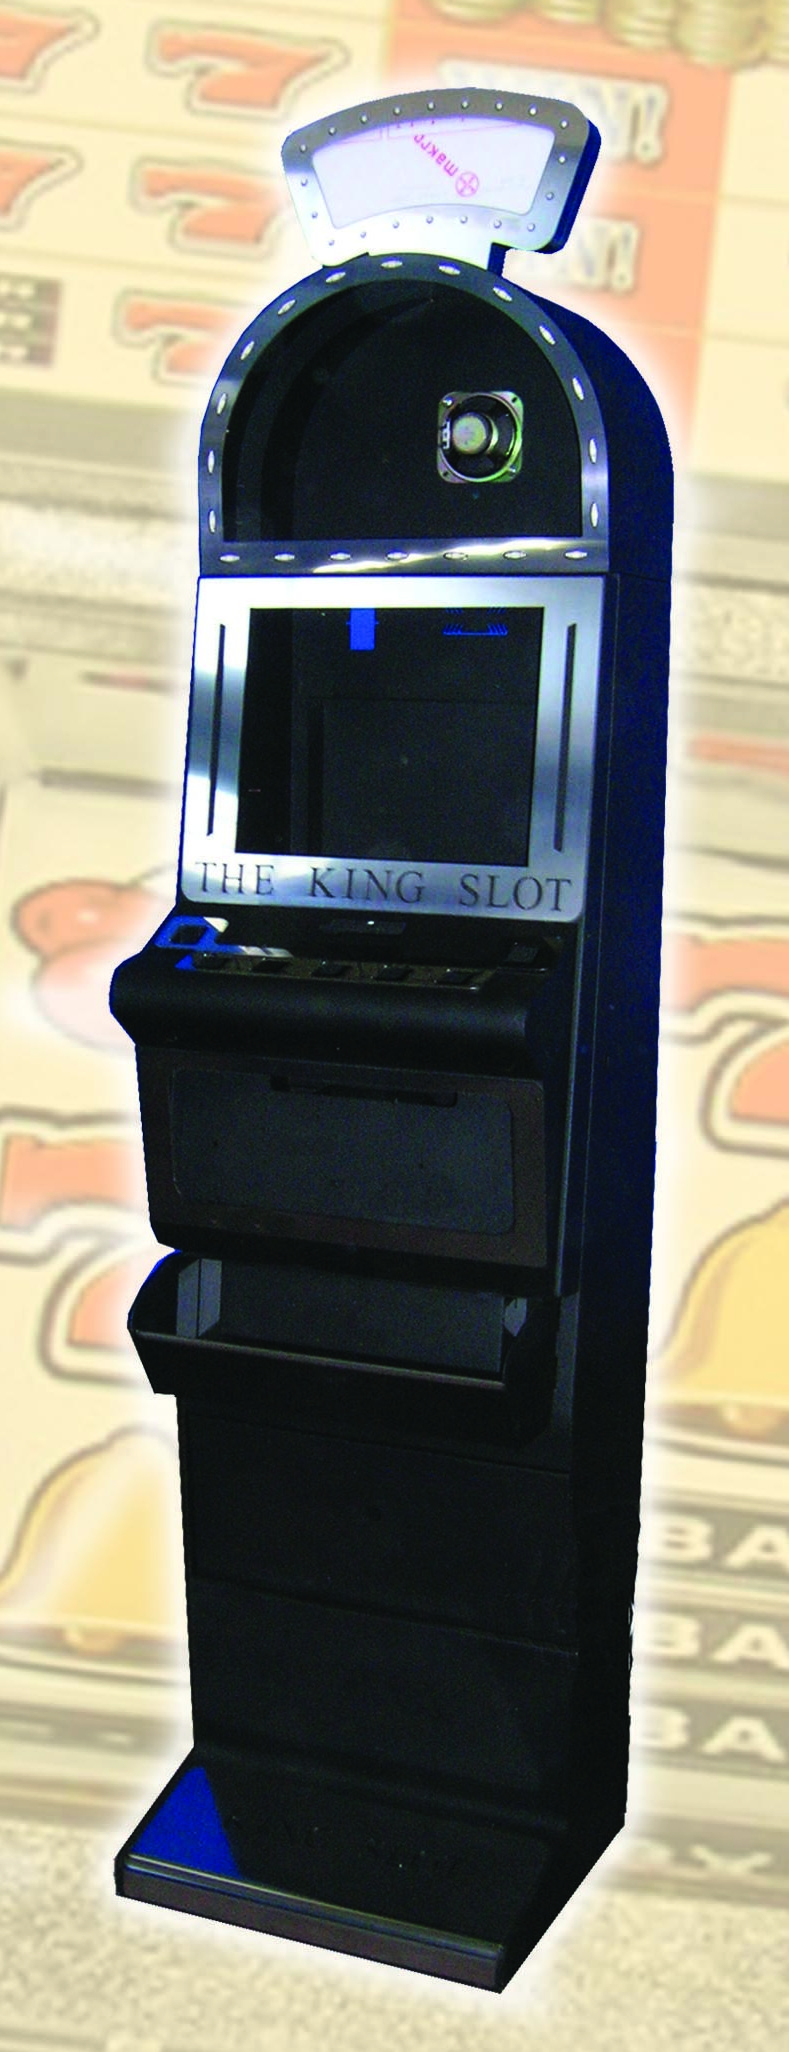 Mobile per slot machine